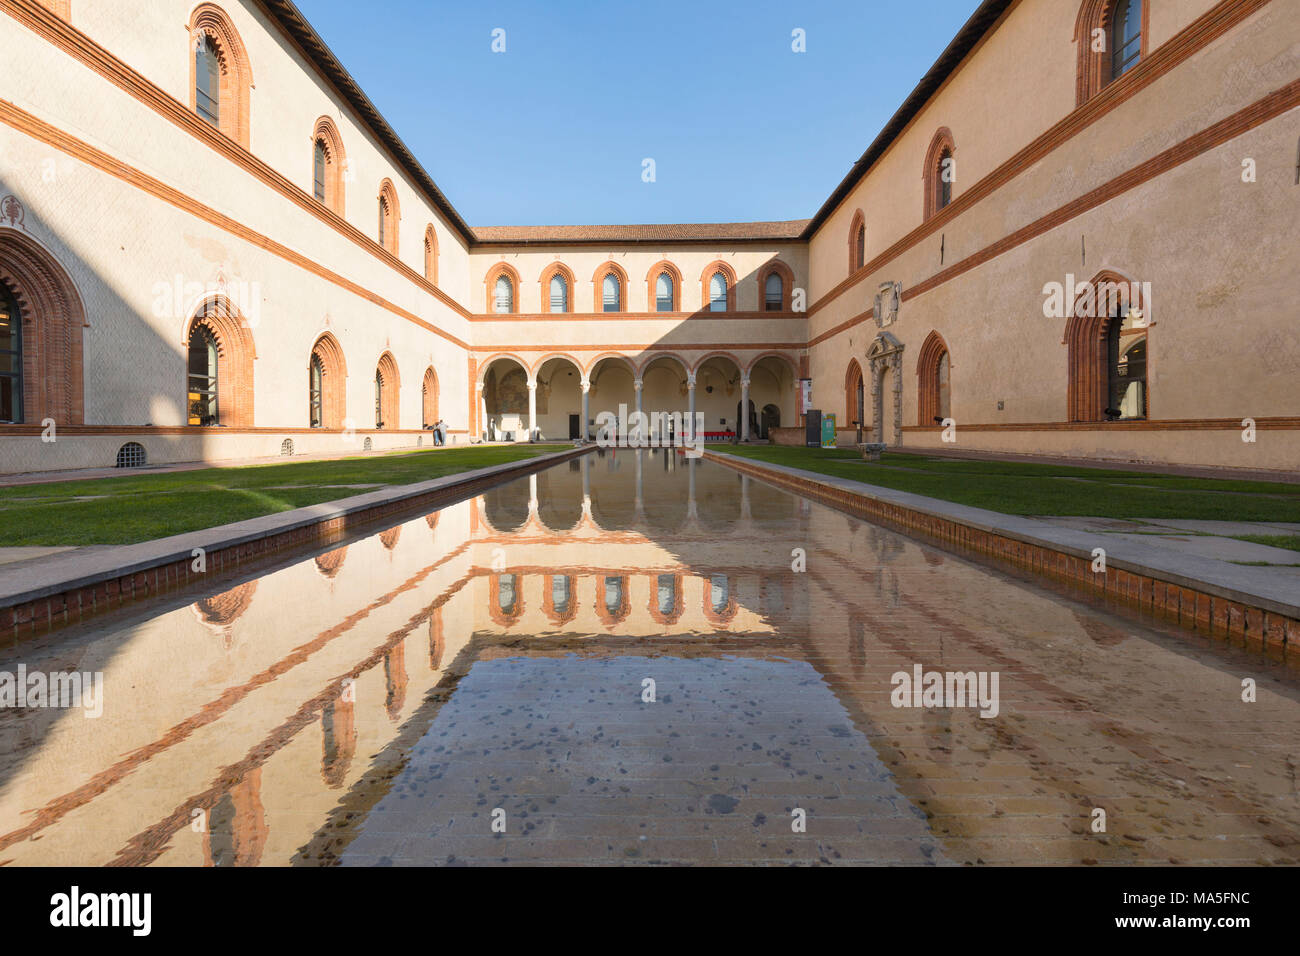 a detail of the Corde Ducale, a inner built of the Sforza Castle, Milan province, Lombardy, Italy - Stock Image